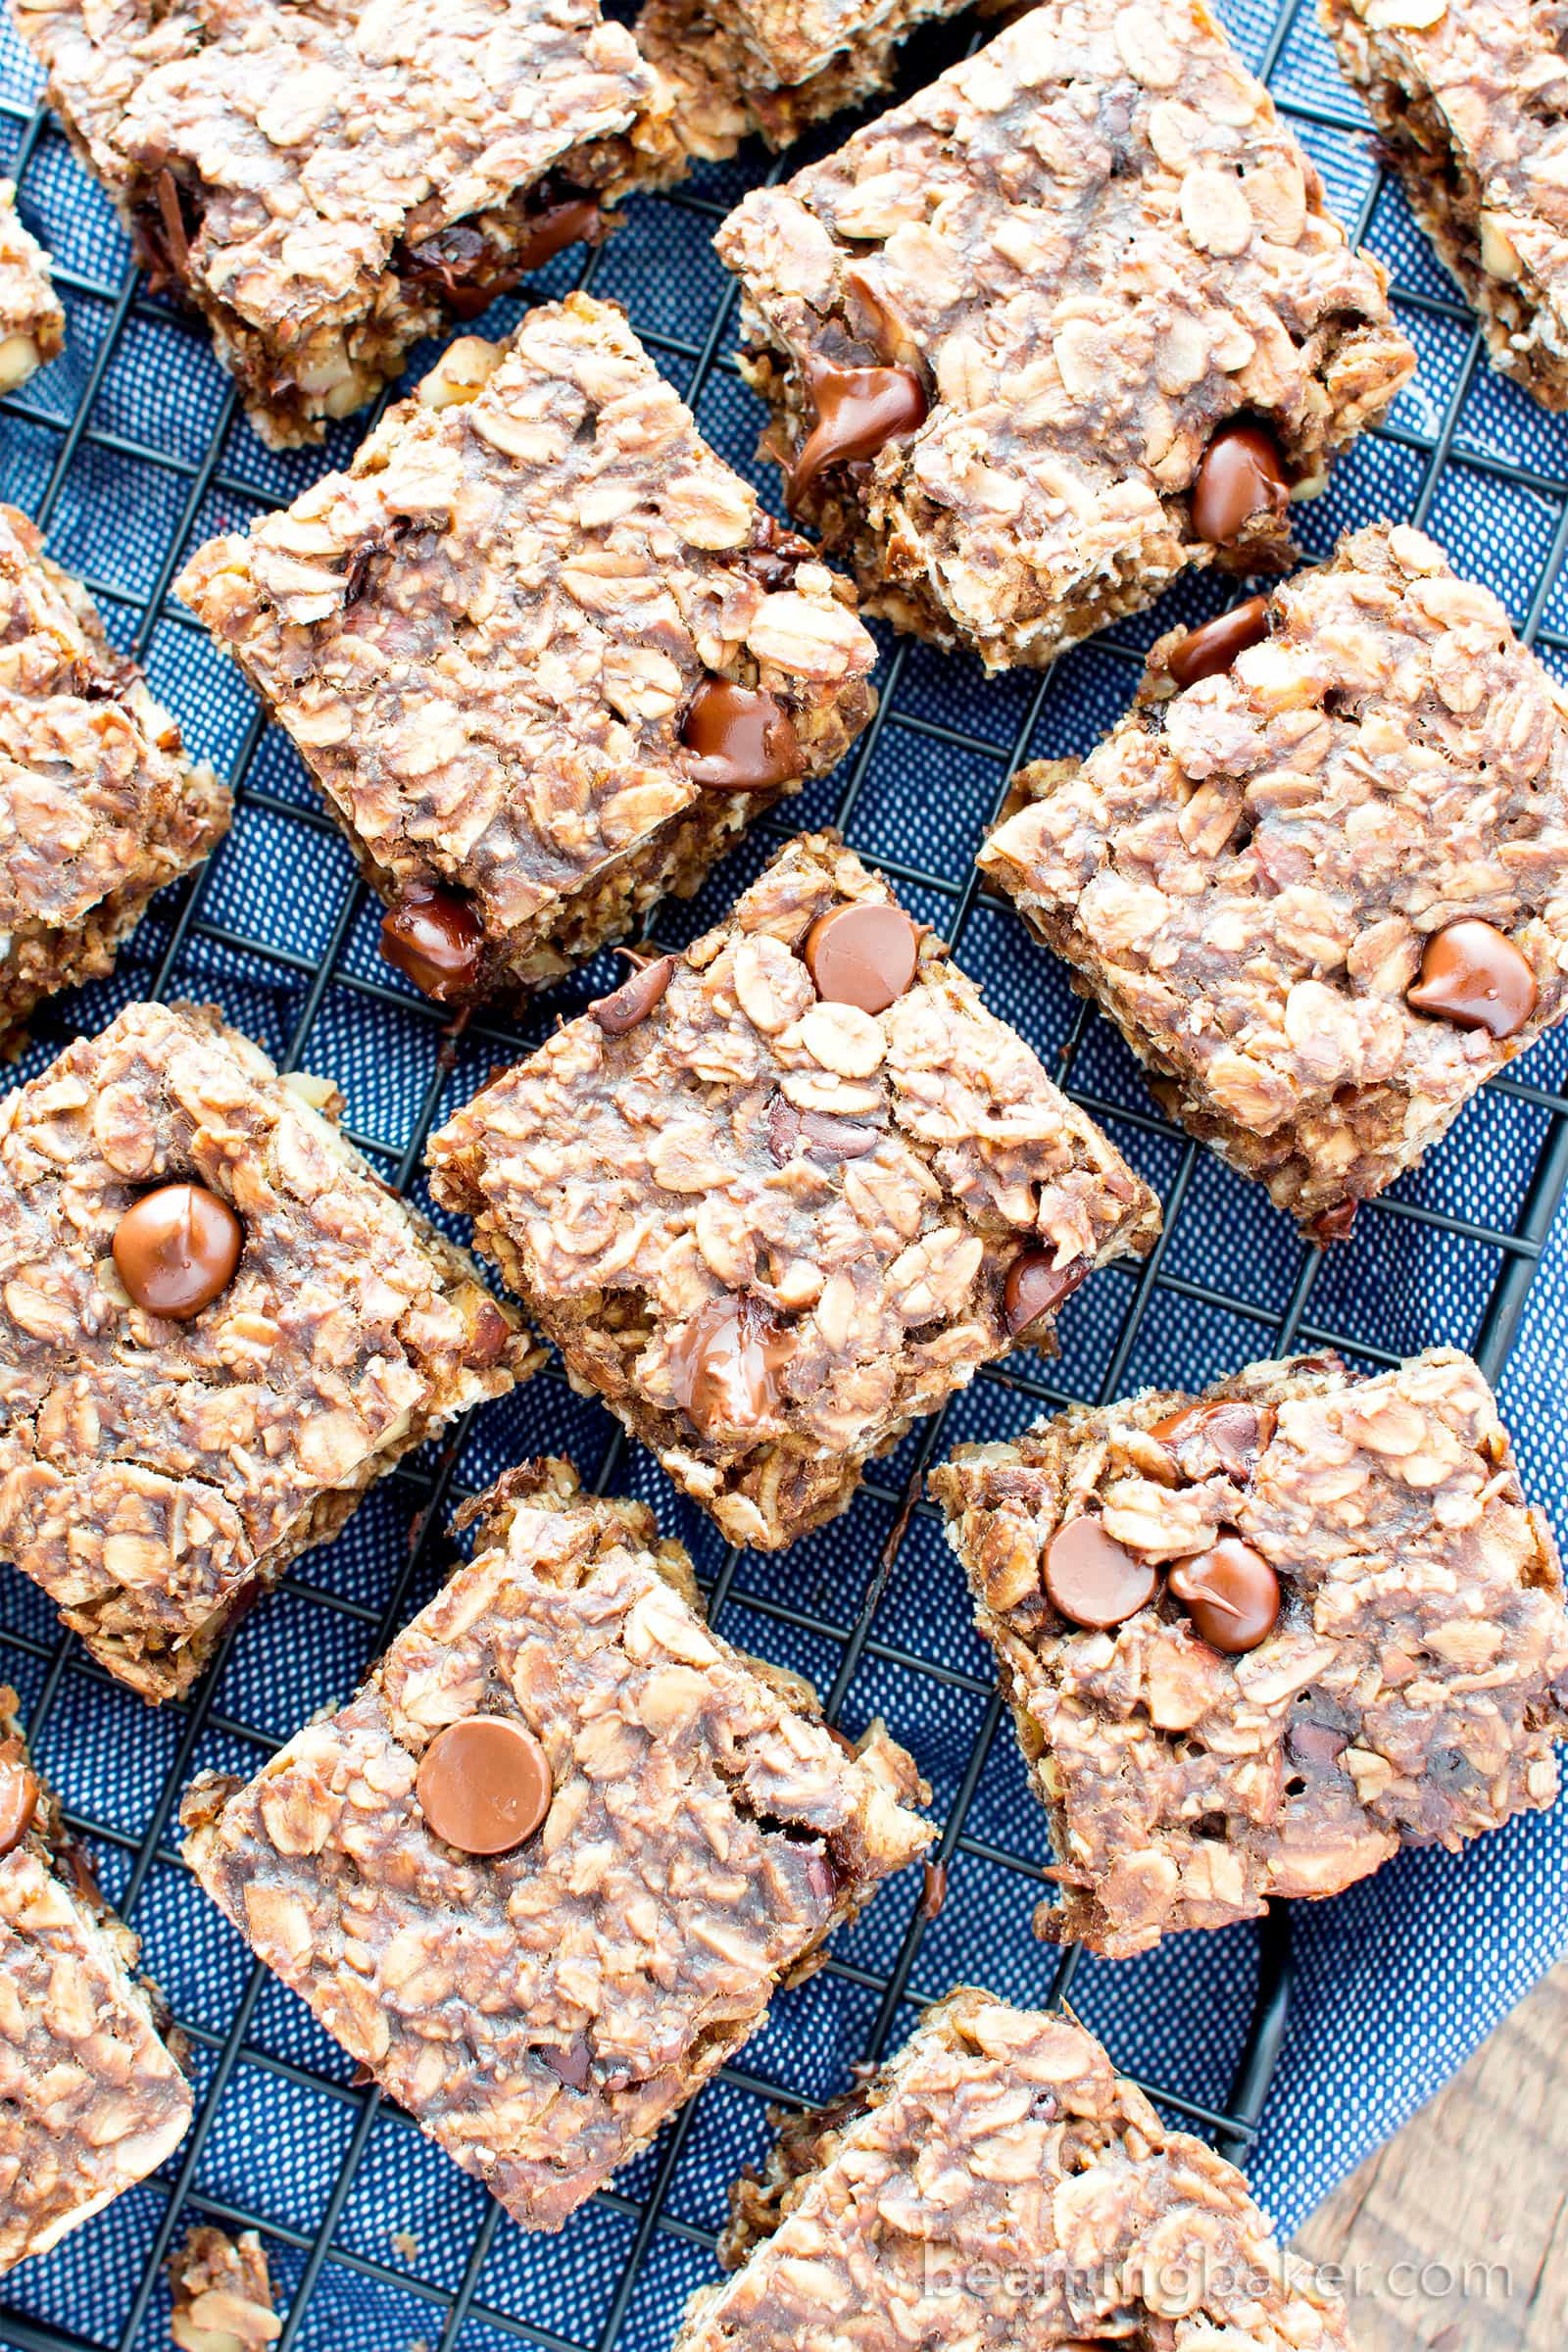 Gluten Free Chocolate Chocolate Chip Oatmeal Banana Breakfast Bars (V, GF): a one bowl recipe for whole ingredient breakfast bars bursting with double the chocolate. #Vegan #GlutenFree #DairyFree #WholeGrain | BeamingBaker.com